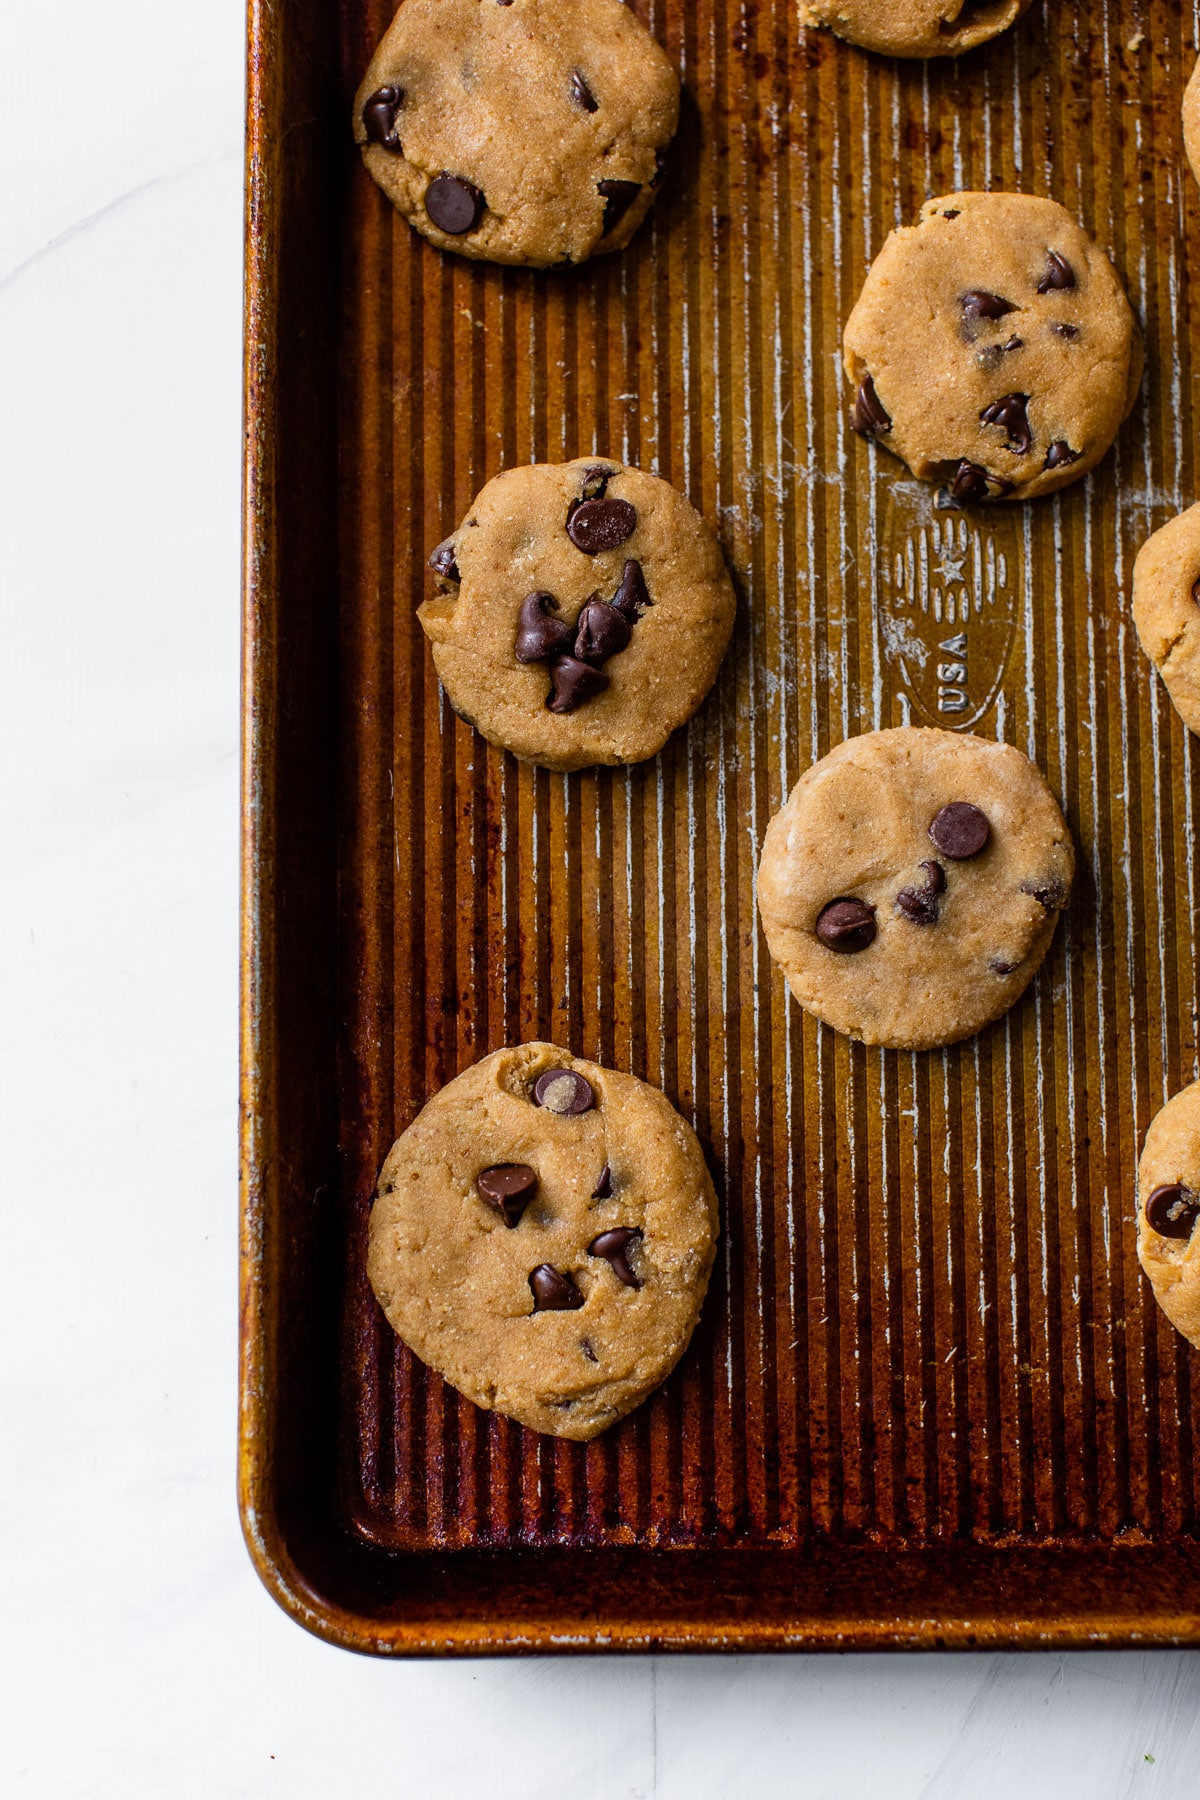 unbaked cookies with chocolate chips on a baking sheet